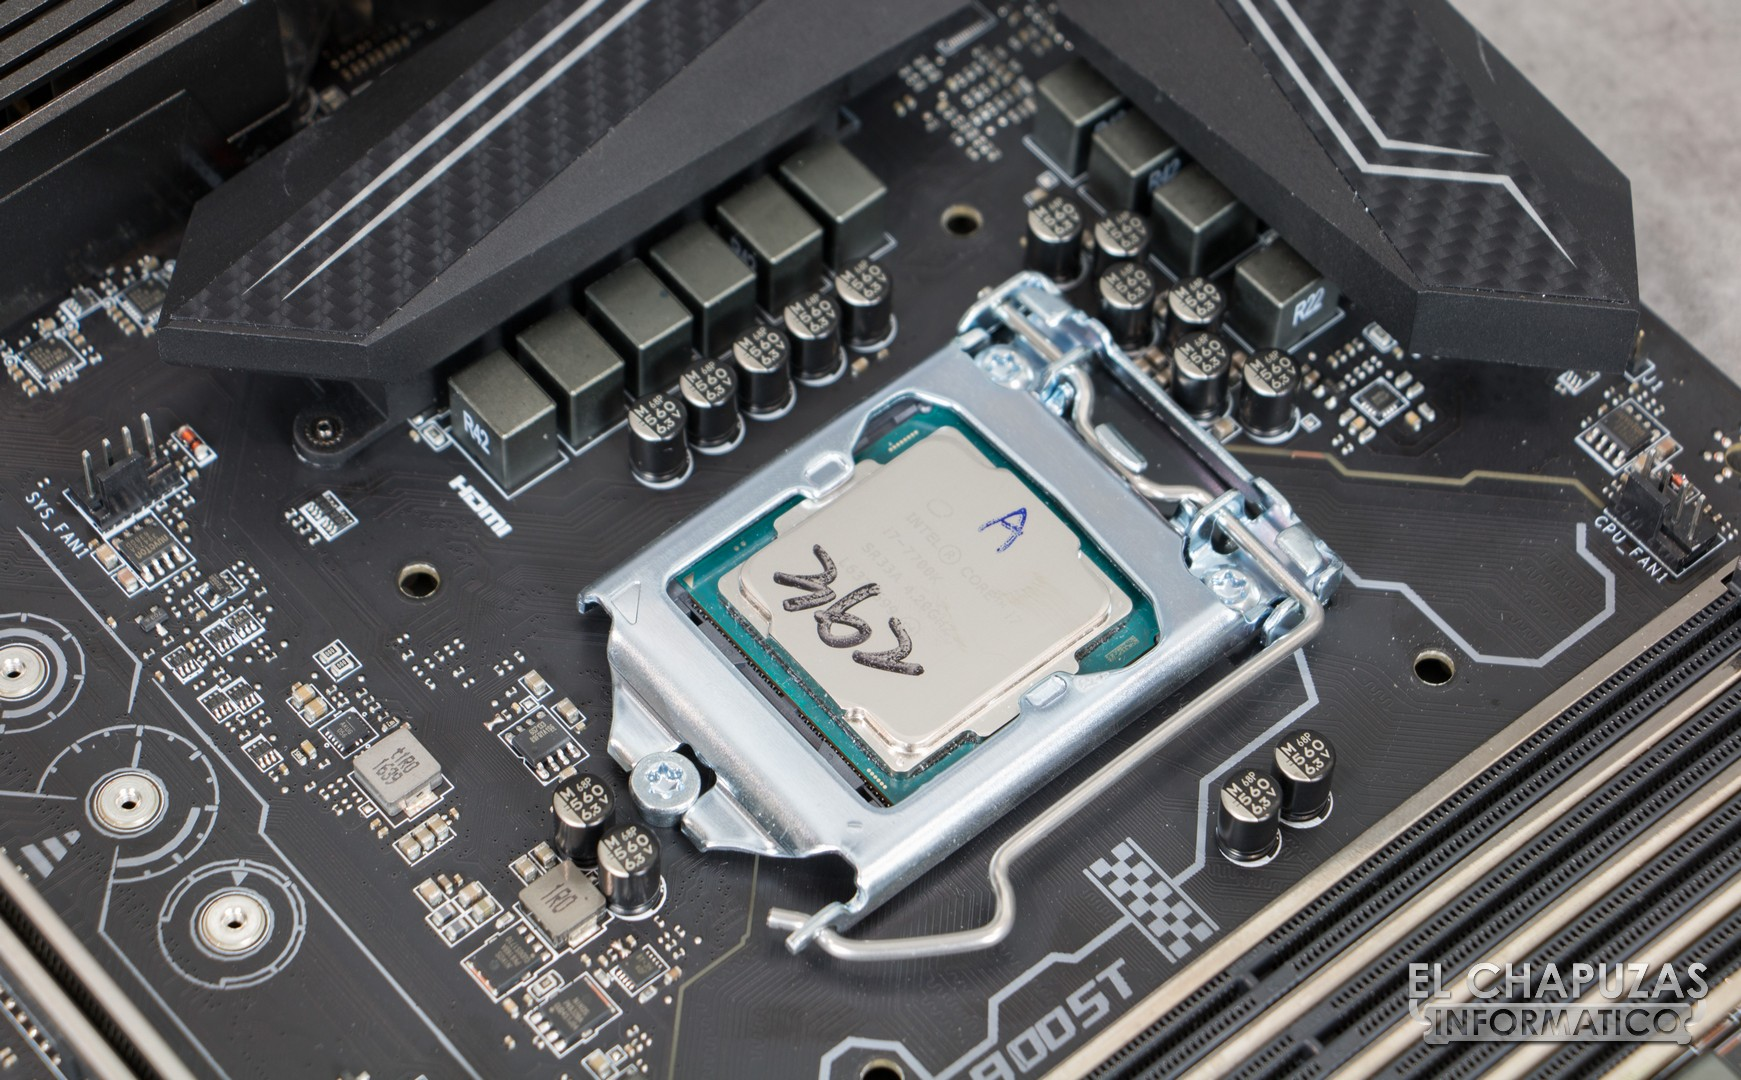 Las CPUs Intel Coffee Lake serían compatibles con las placas base con socket LGA1151